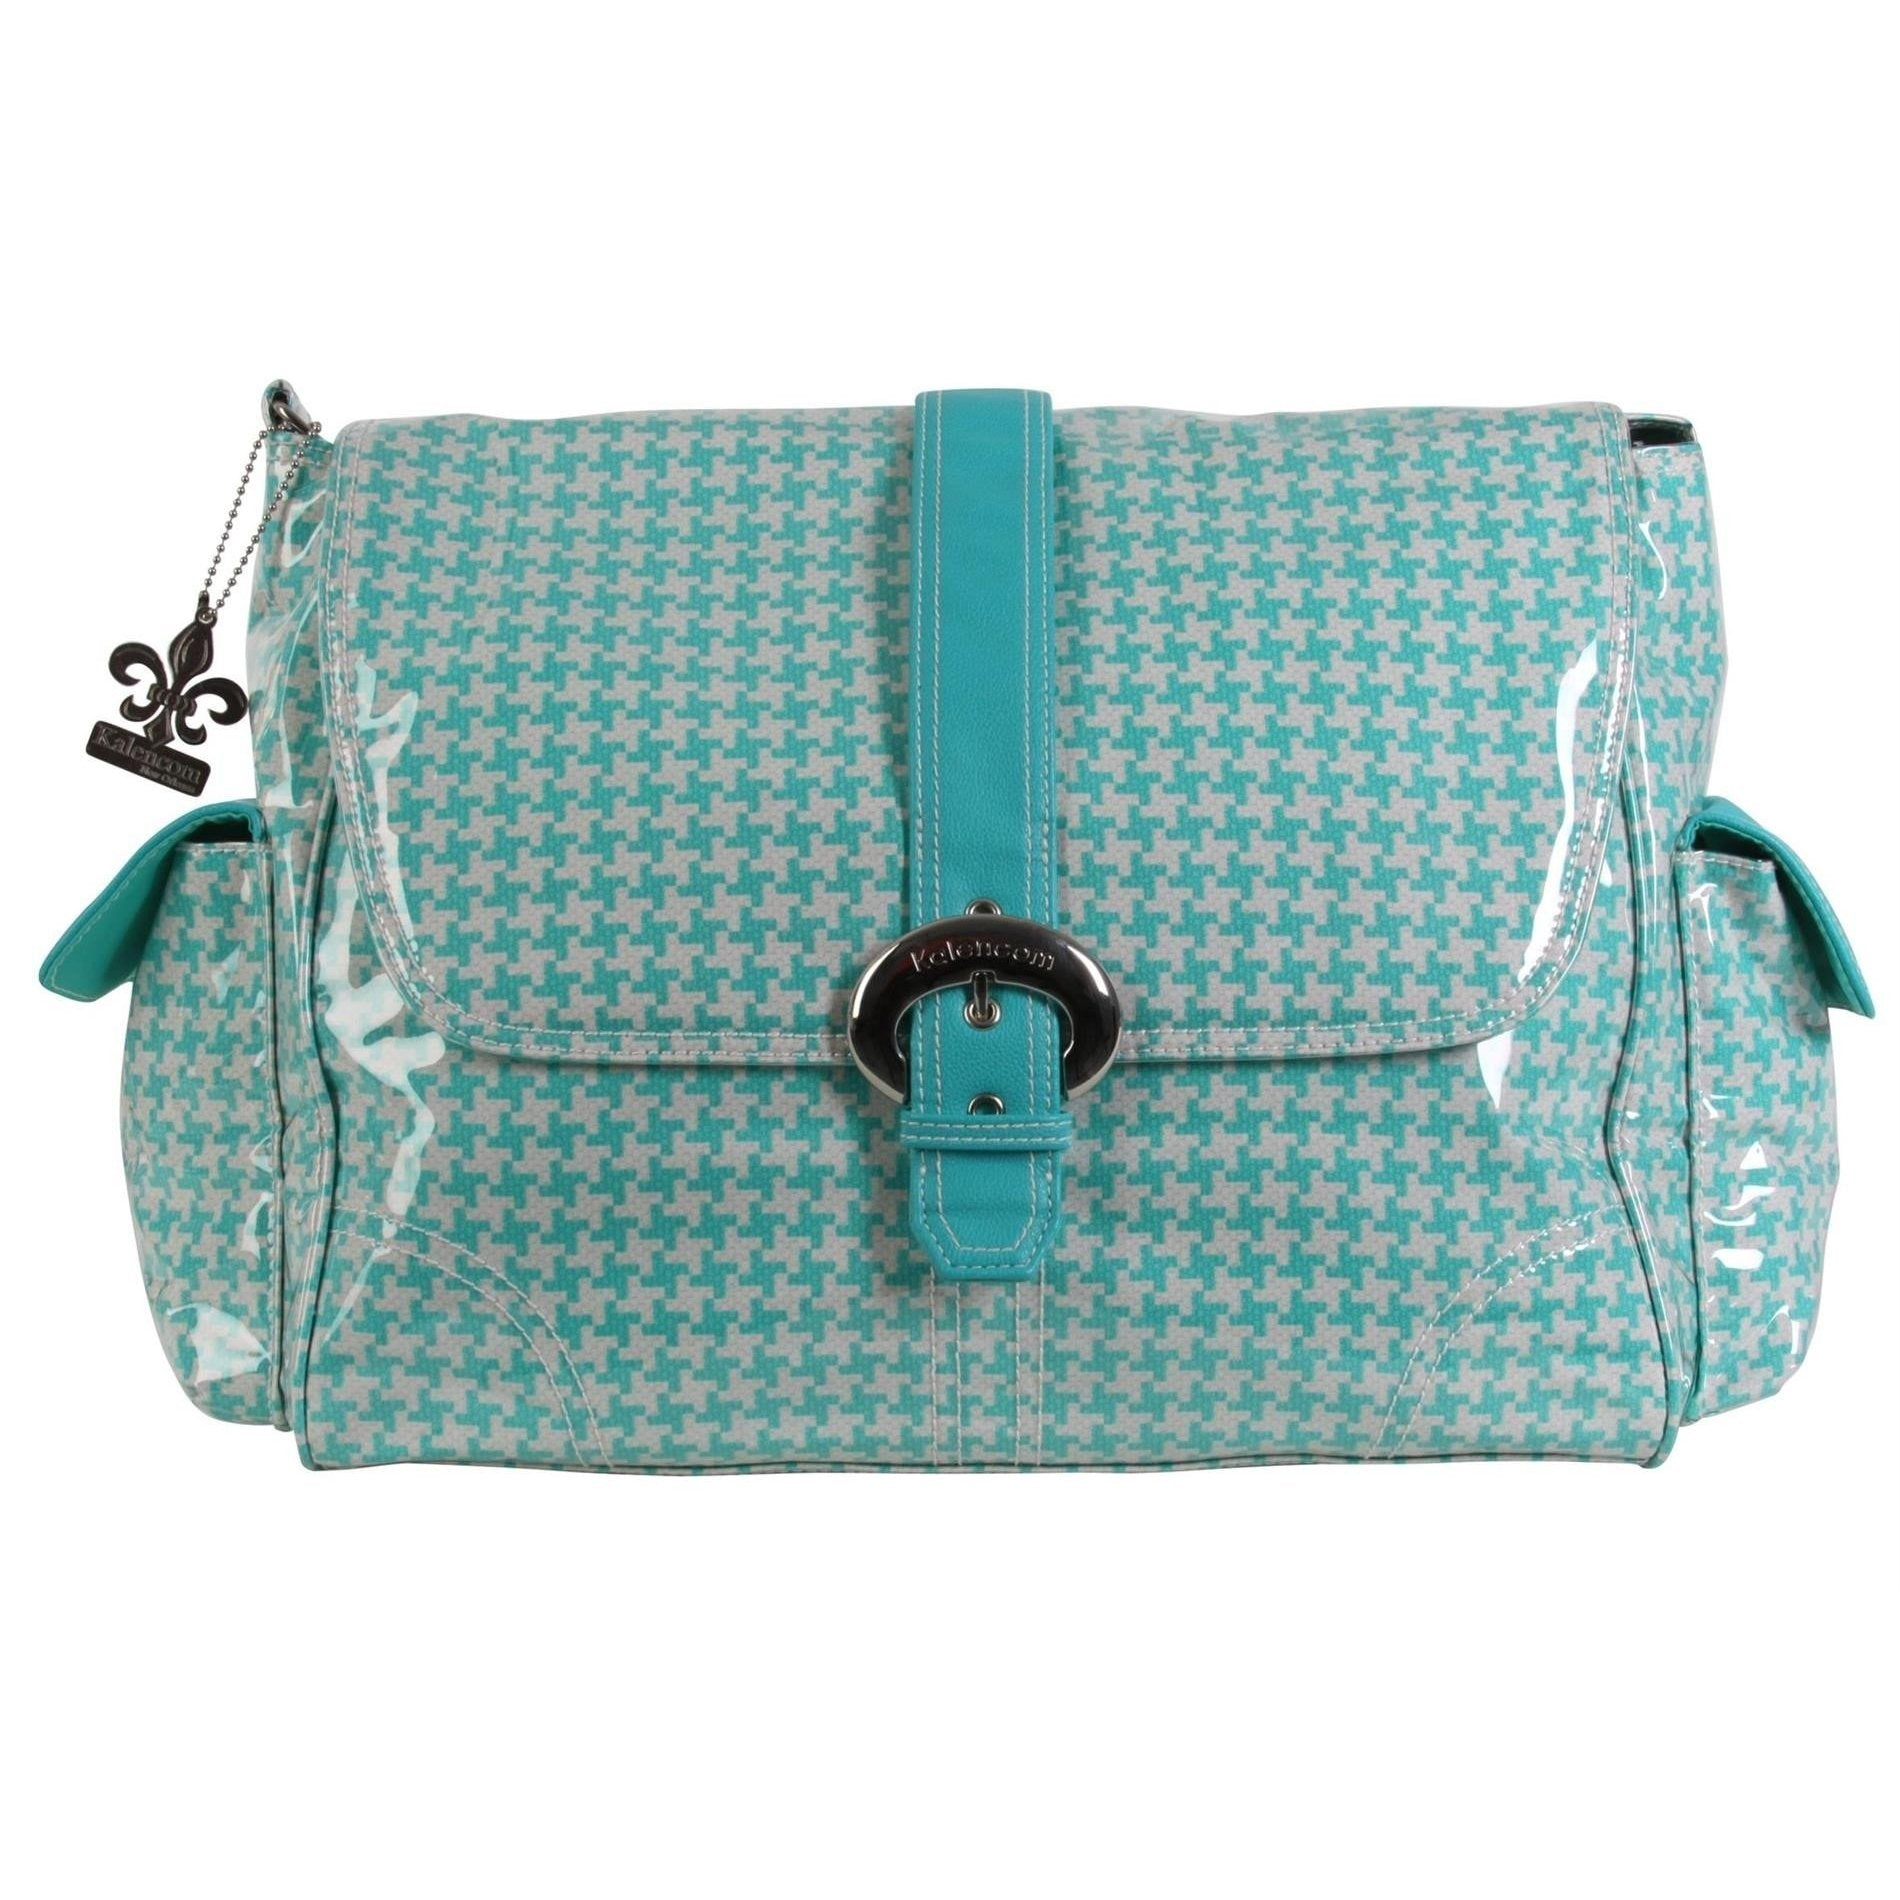 Houndstooth - Aqua Laminated Buckle Diaper Bag | Style 2960 - Kalencom-Diaper Bags-Jack and Jill Boutique